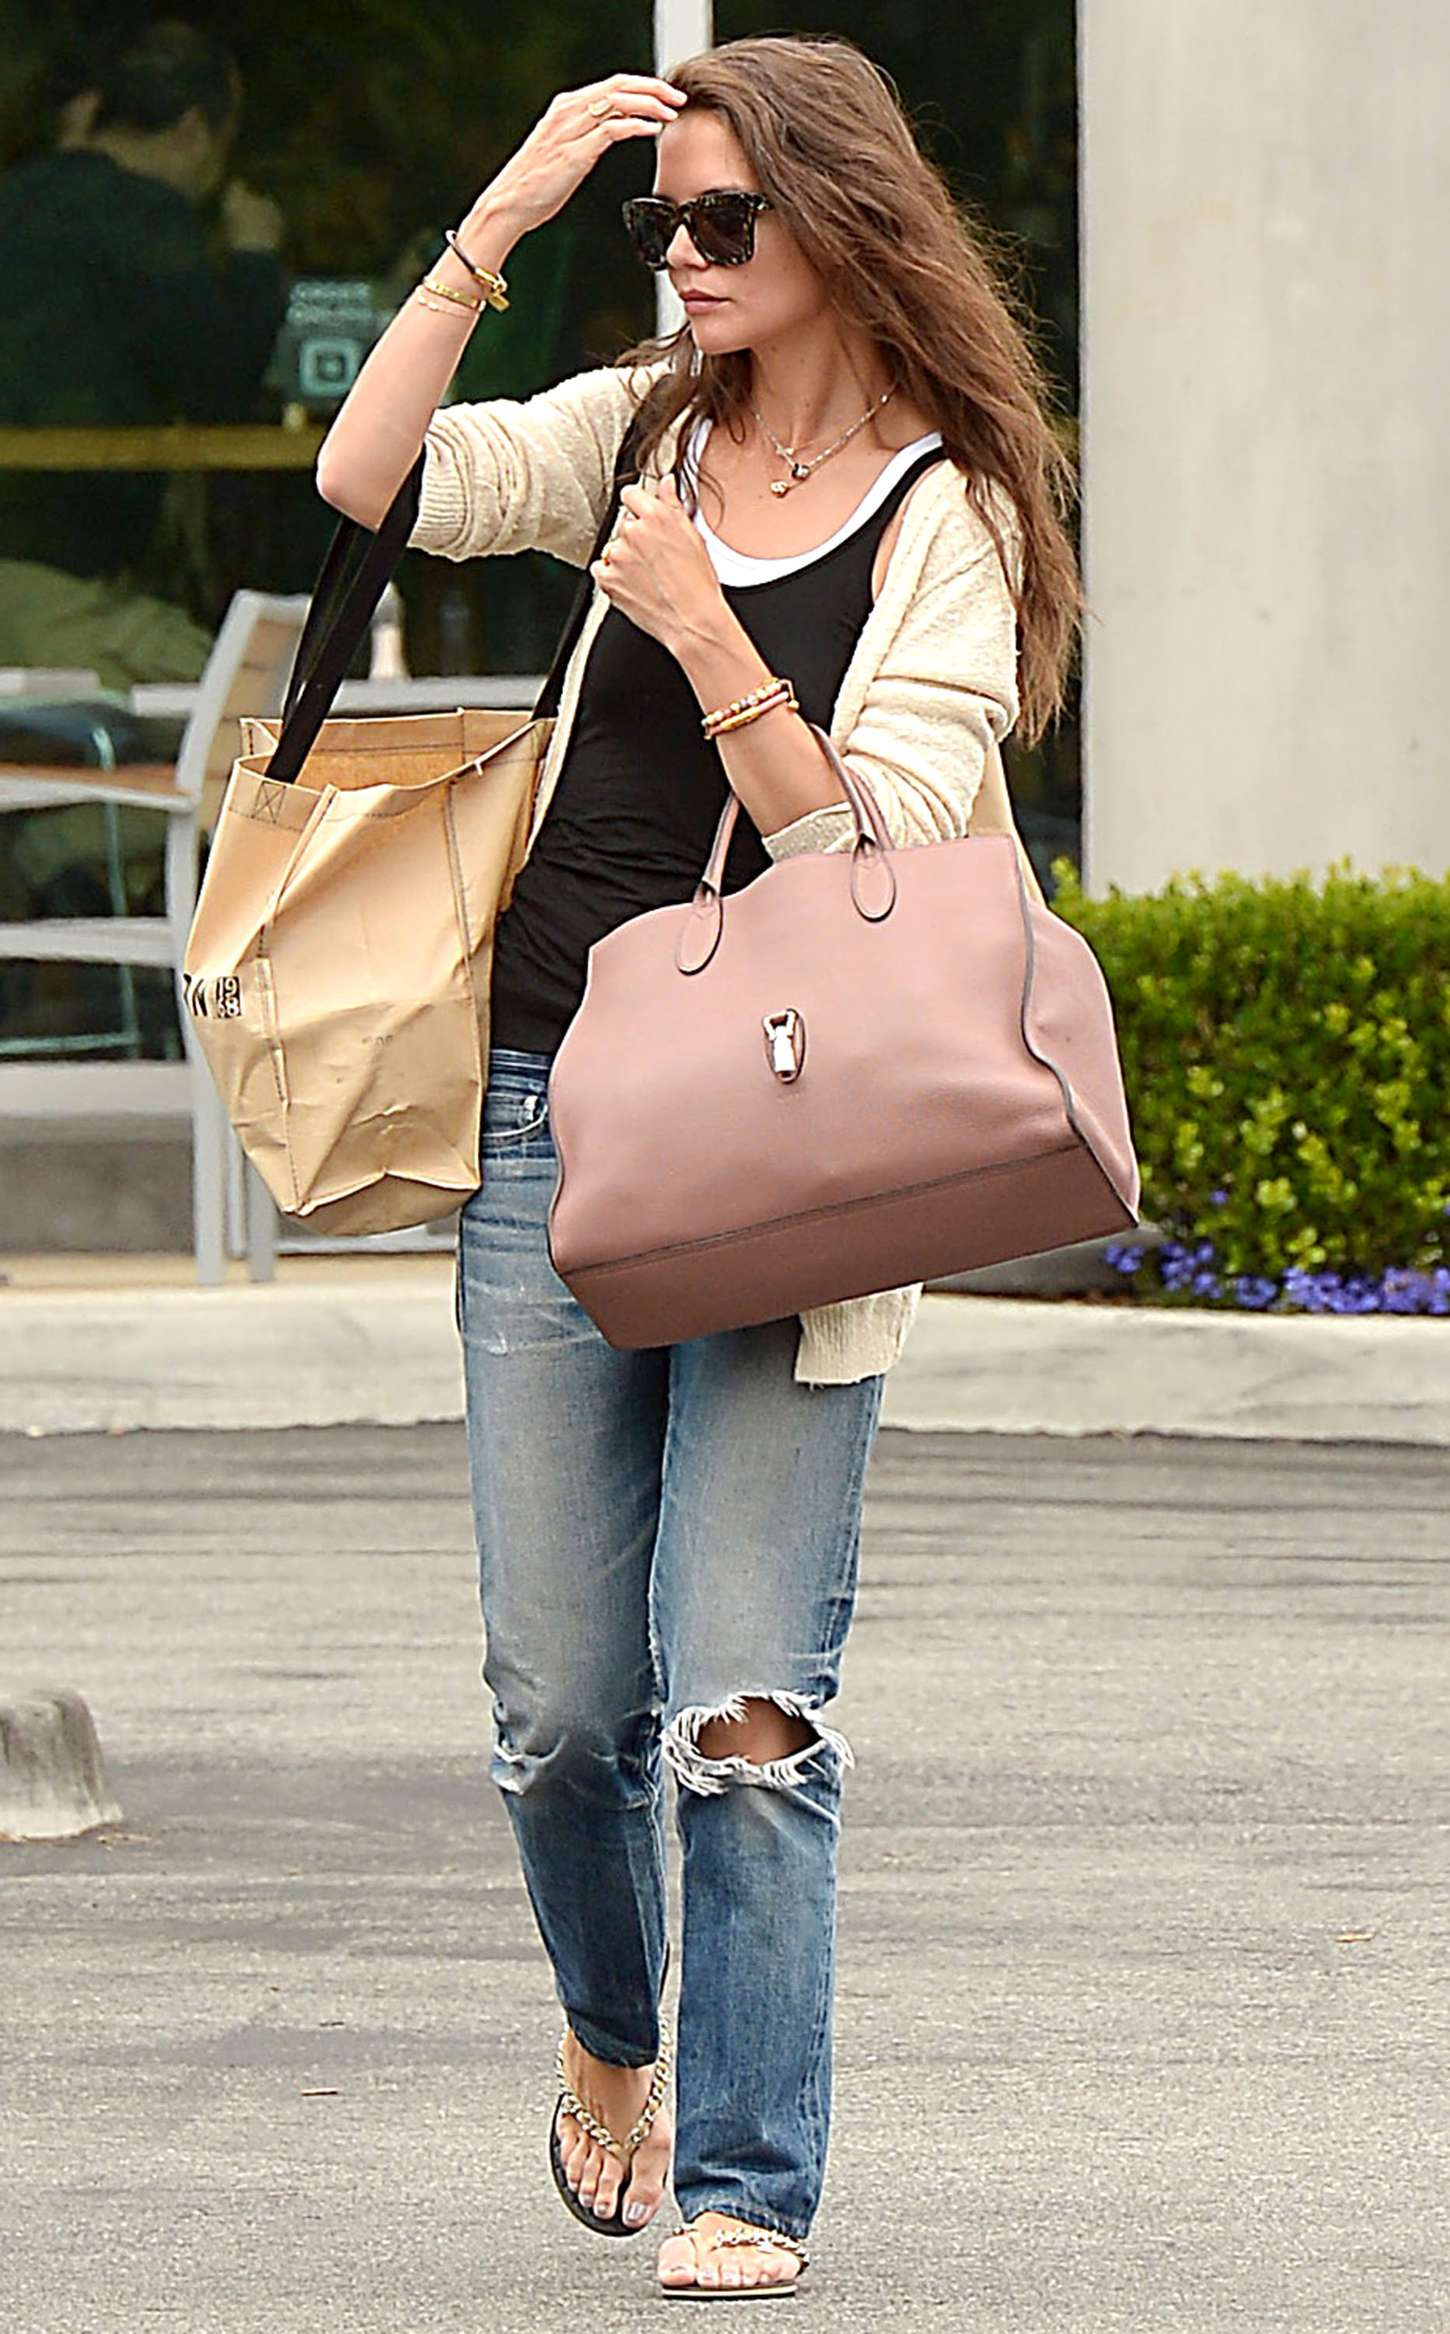 Katie Holmes 2015 : Katie Holmes in Jeans at Whole Foods -07